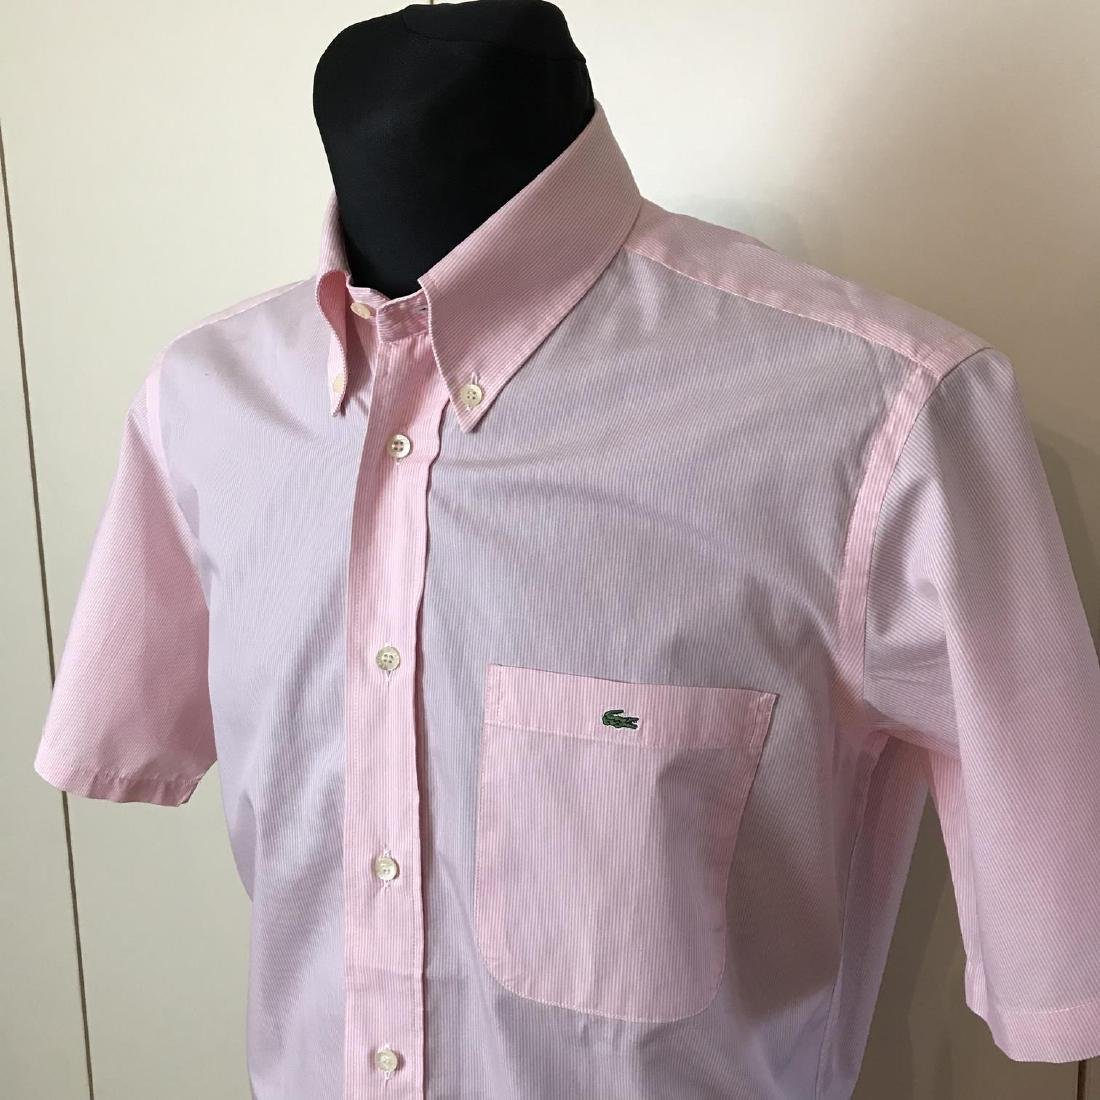 Men's Lacoste Pink Short Sleeve Shirt Top Size US 40 - 2